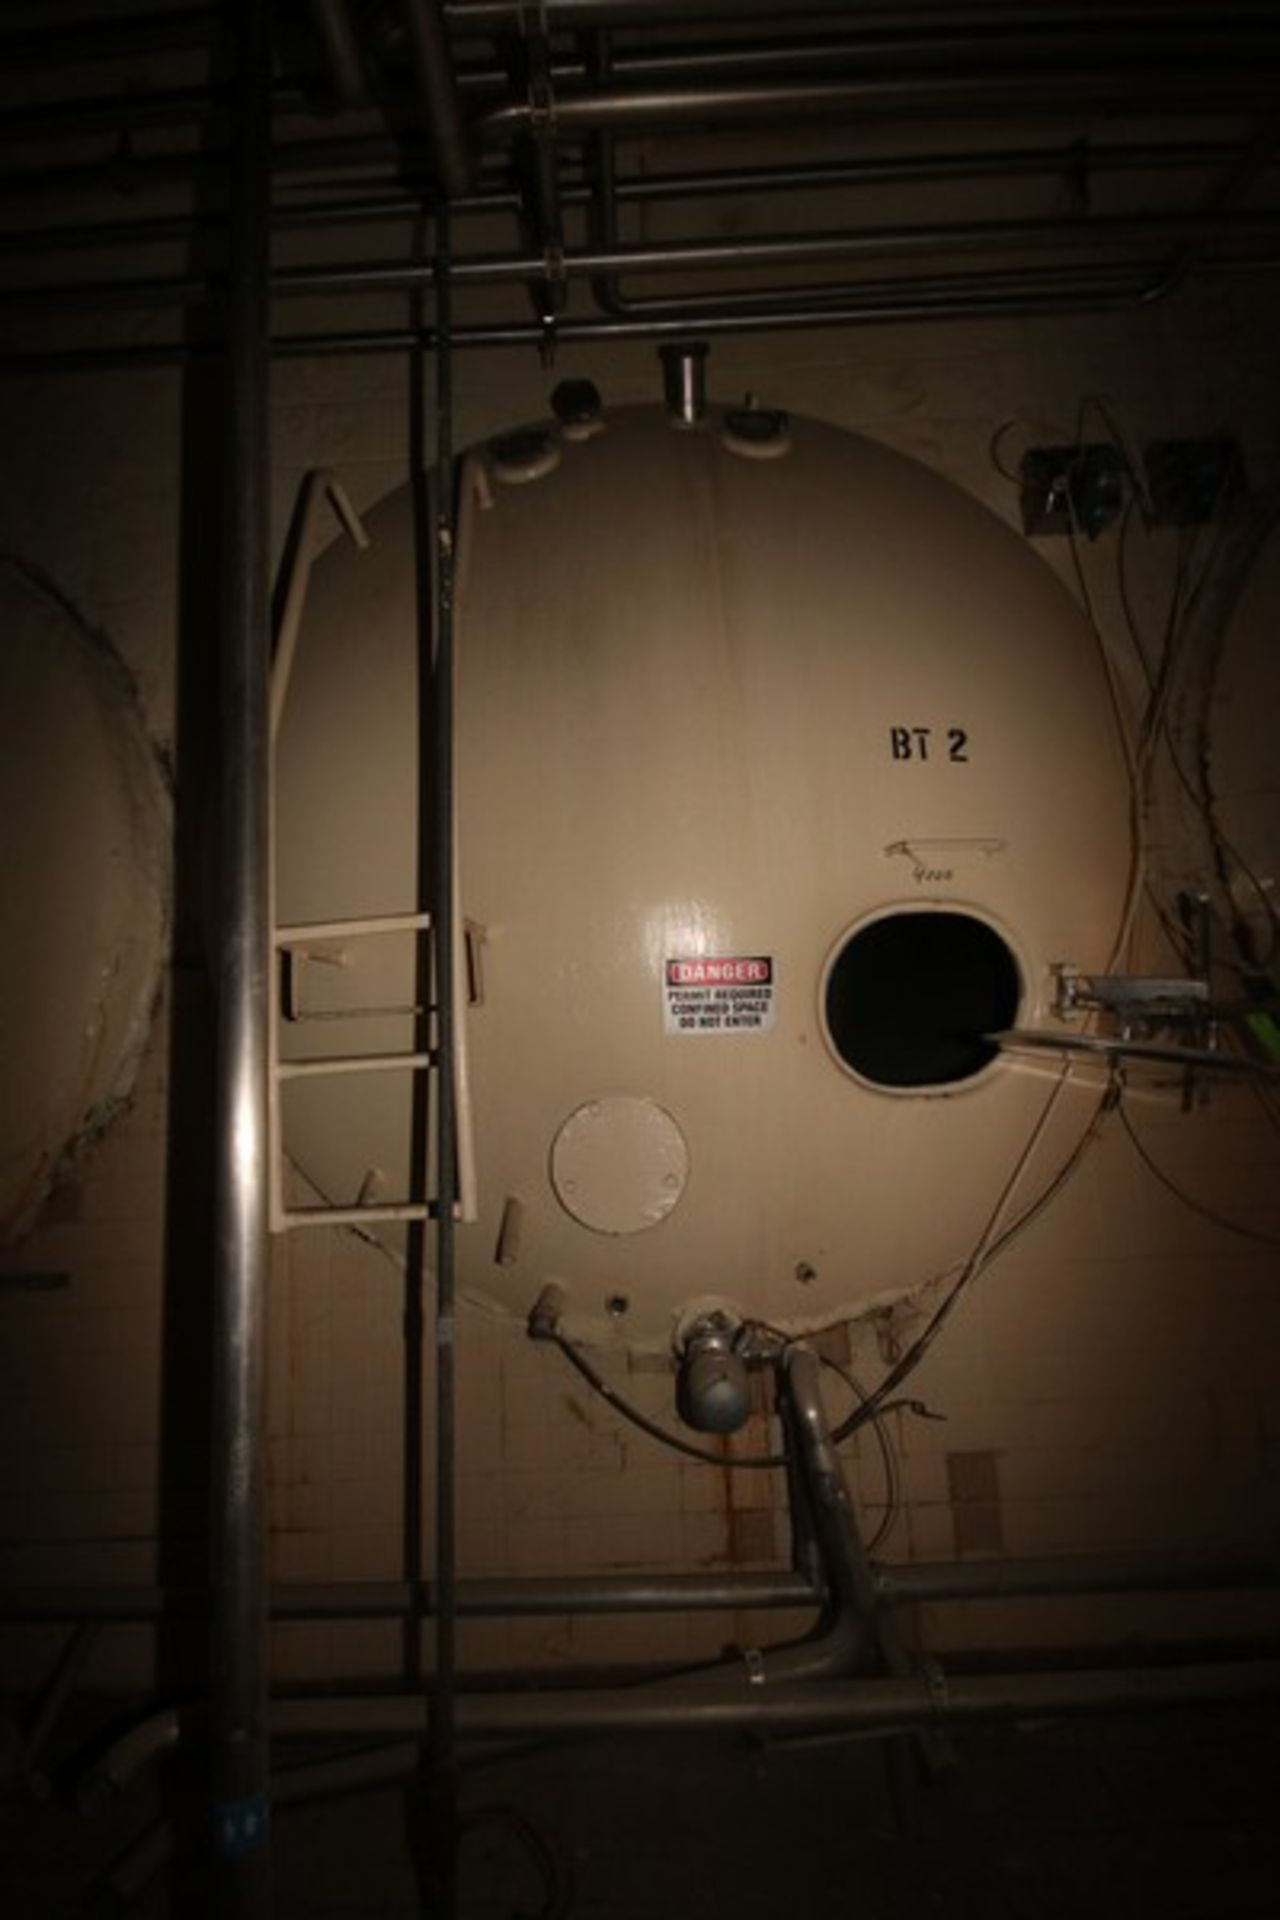 Aprox. 4,000 Gal. S/S Horizontal Tank, with Carbon Steel Sheathing, Dish Heads, Tank Dims.: Aprox. - Image 2 of 4